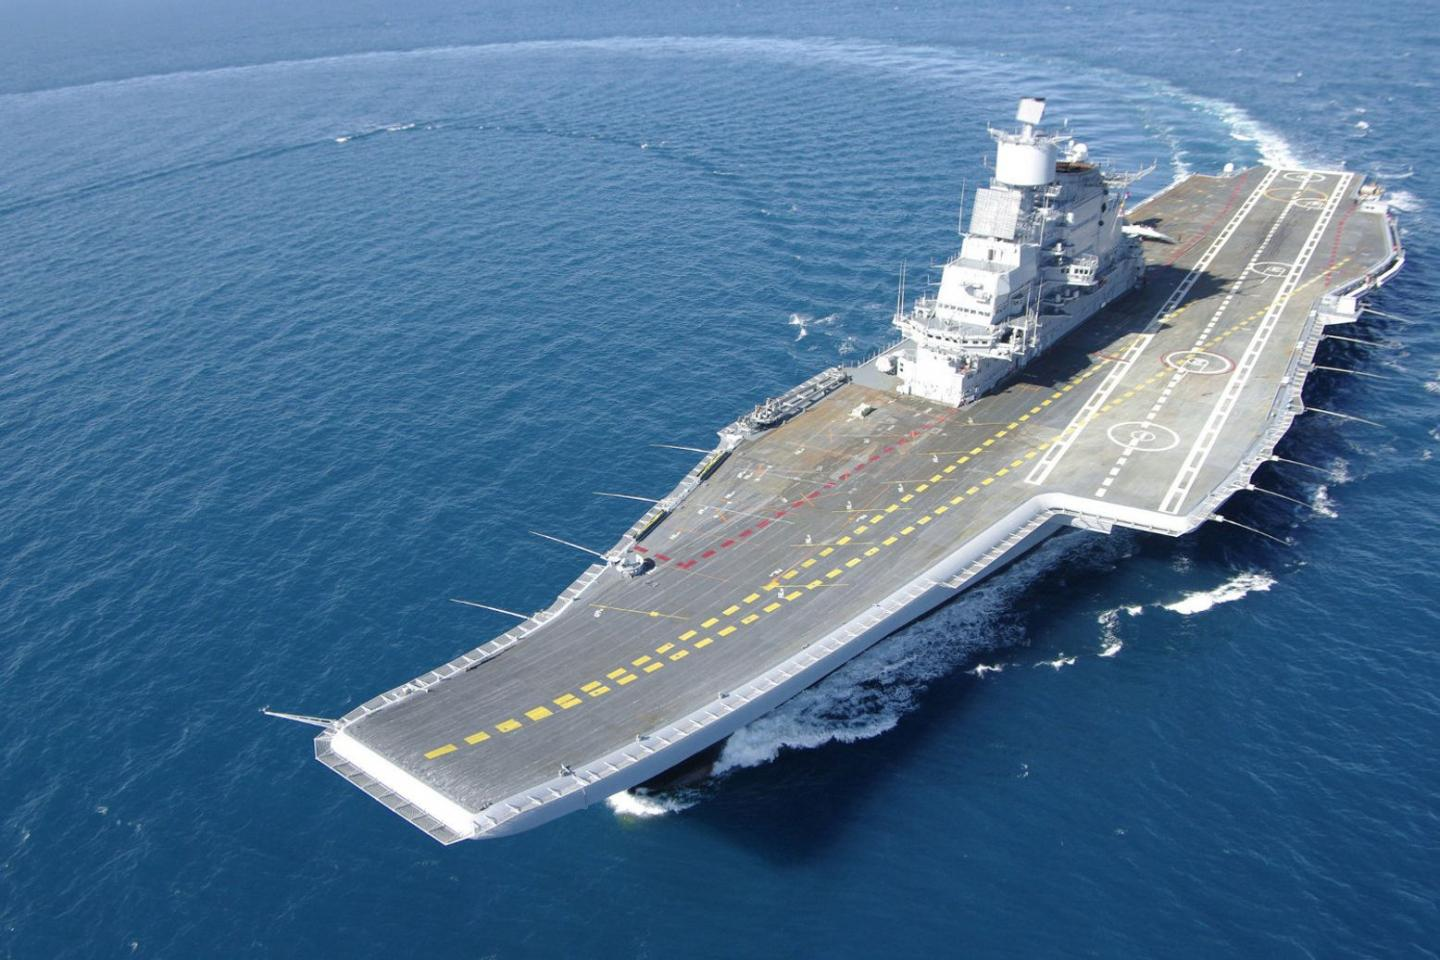 China Claims It Knows What Caused the Fire Outbreak on Indias Aircraft Carrier